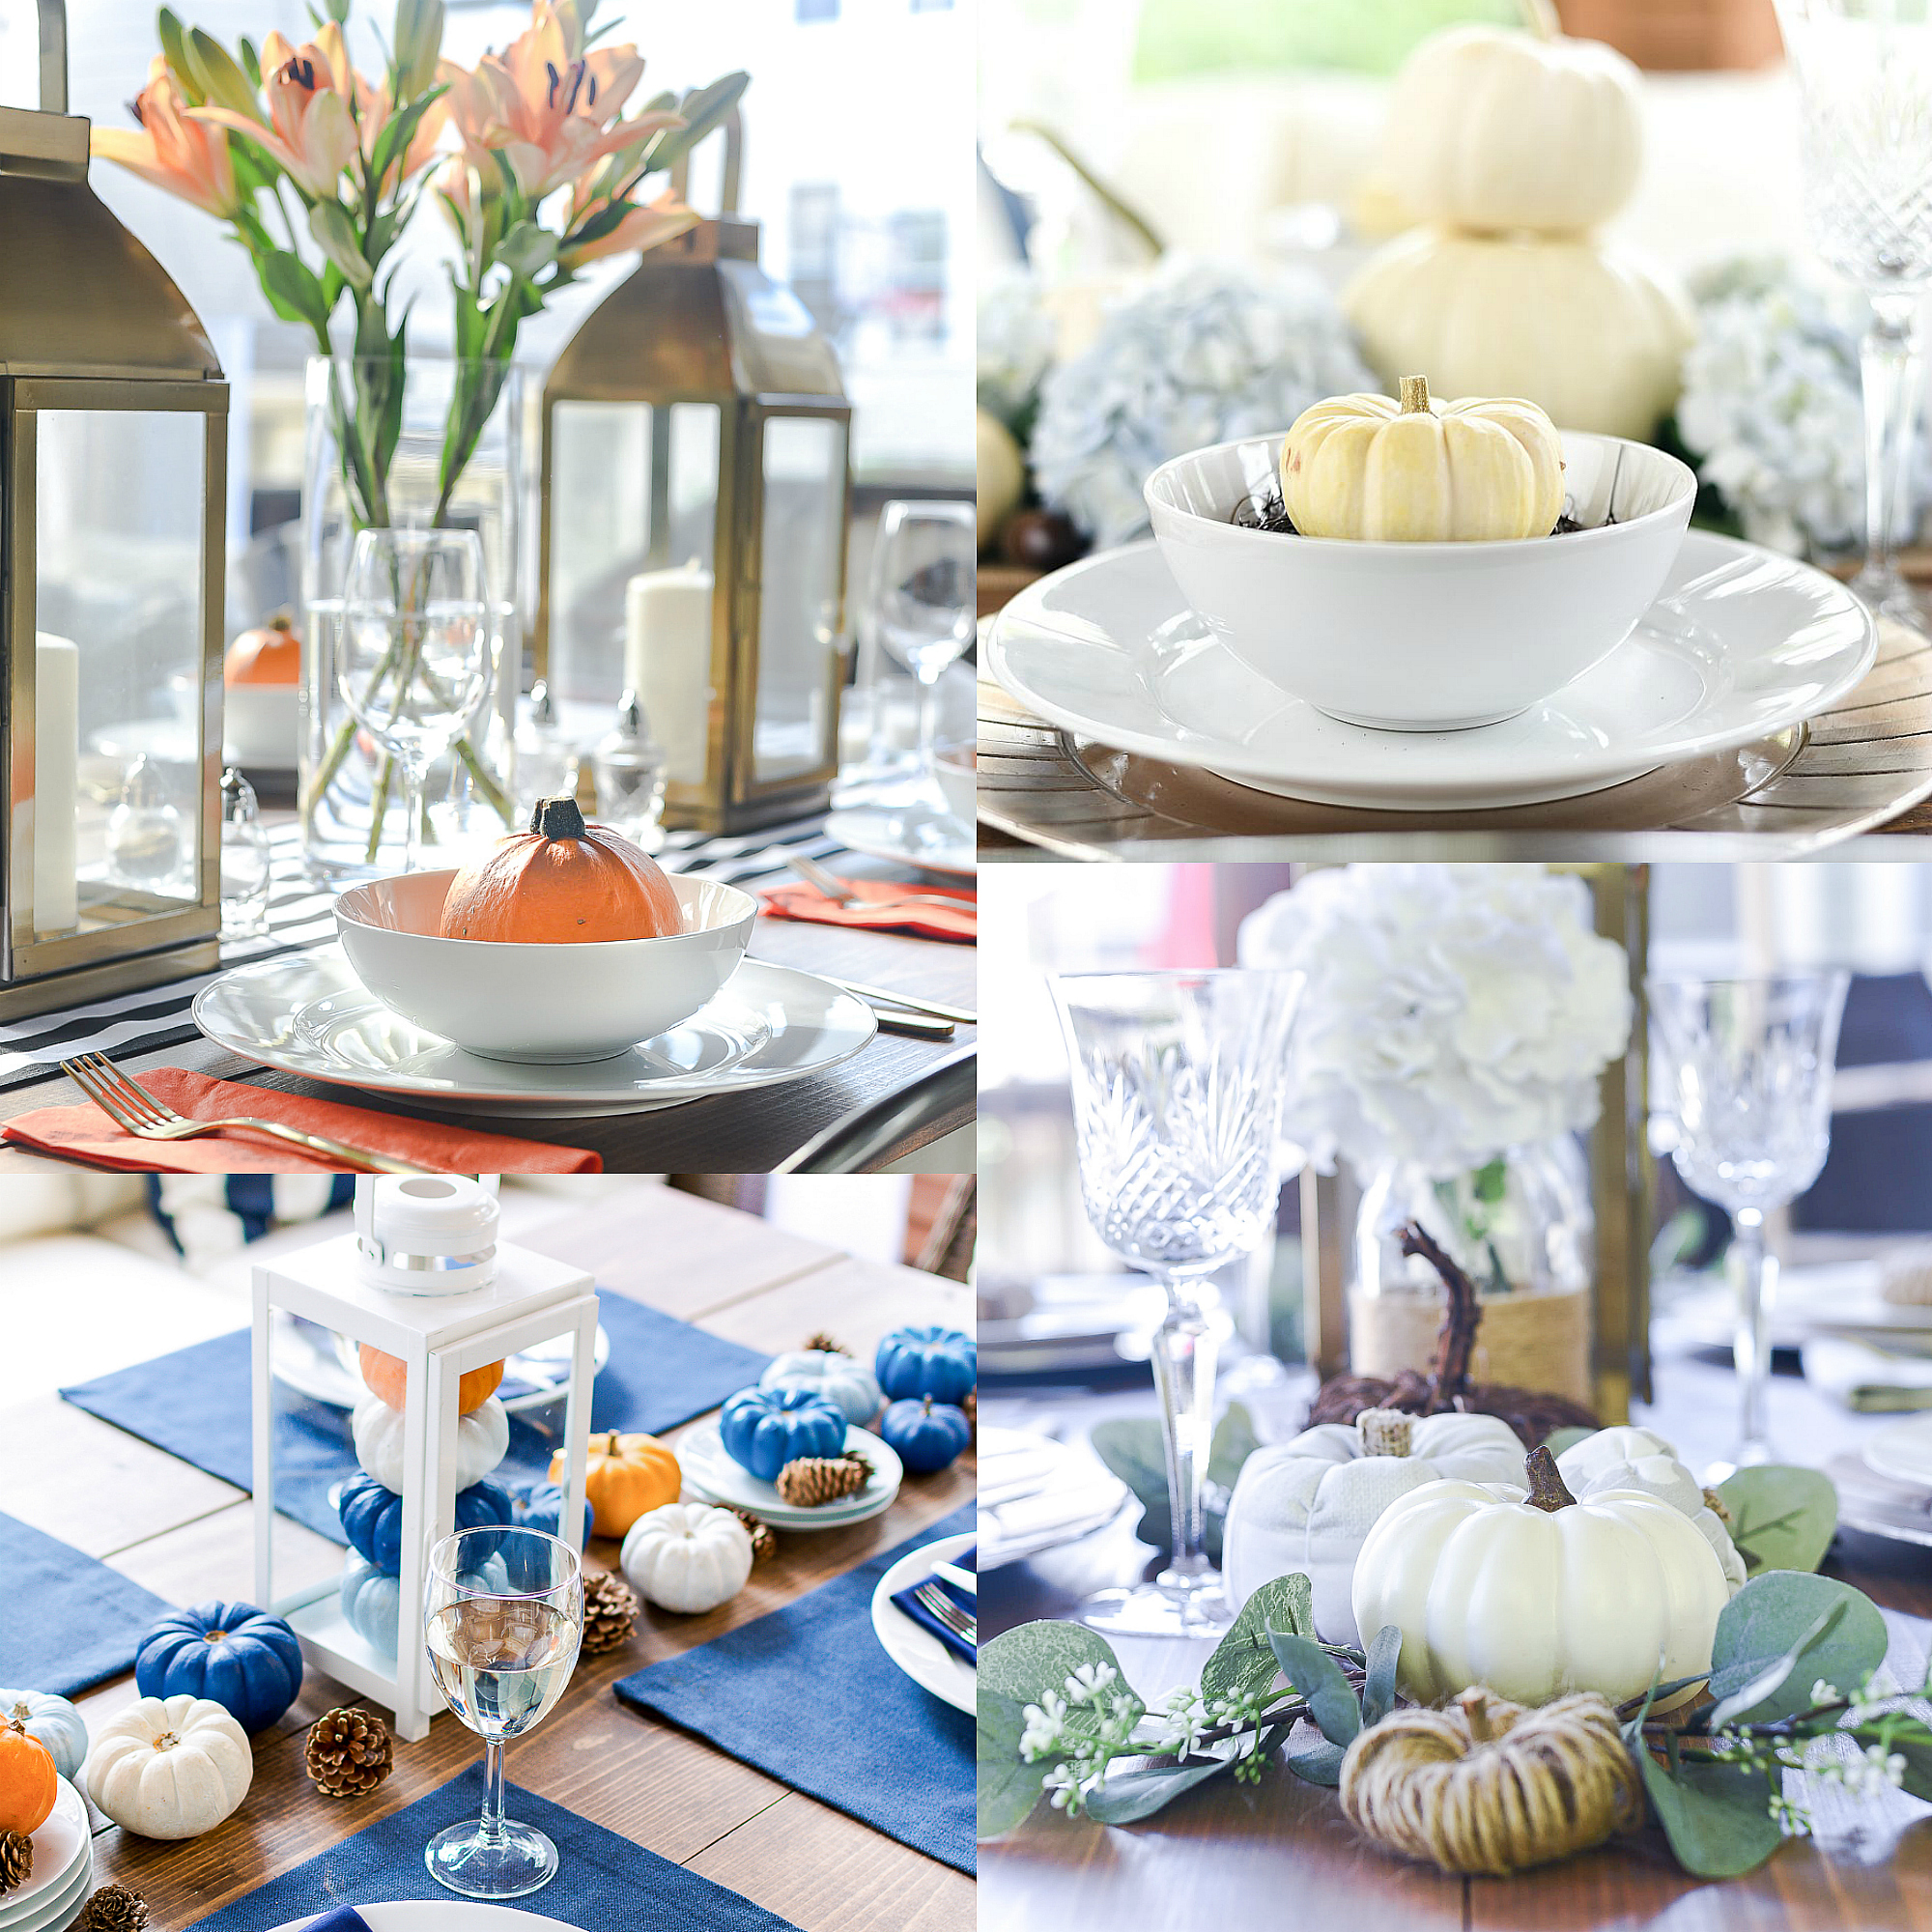 November in Chicago - Thanksgiving Table Setting Ideas